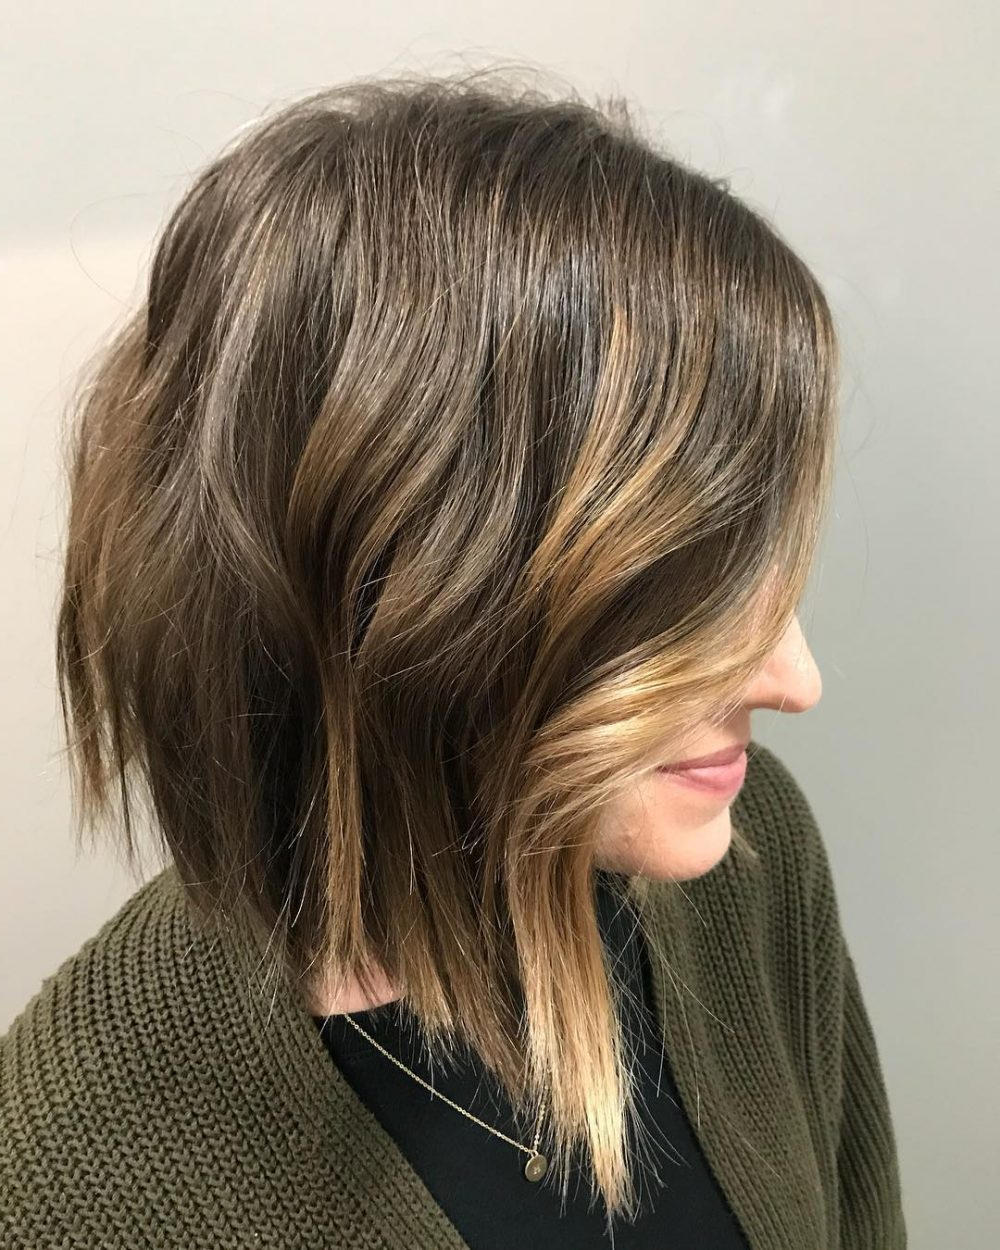 100 Hottest Choppy Bob Hairstyles For Women In 2019 With Matte Shaggy Bob Hairstyles (View 3 of 20)